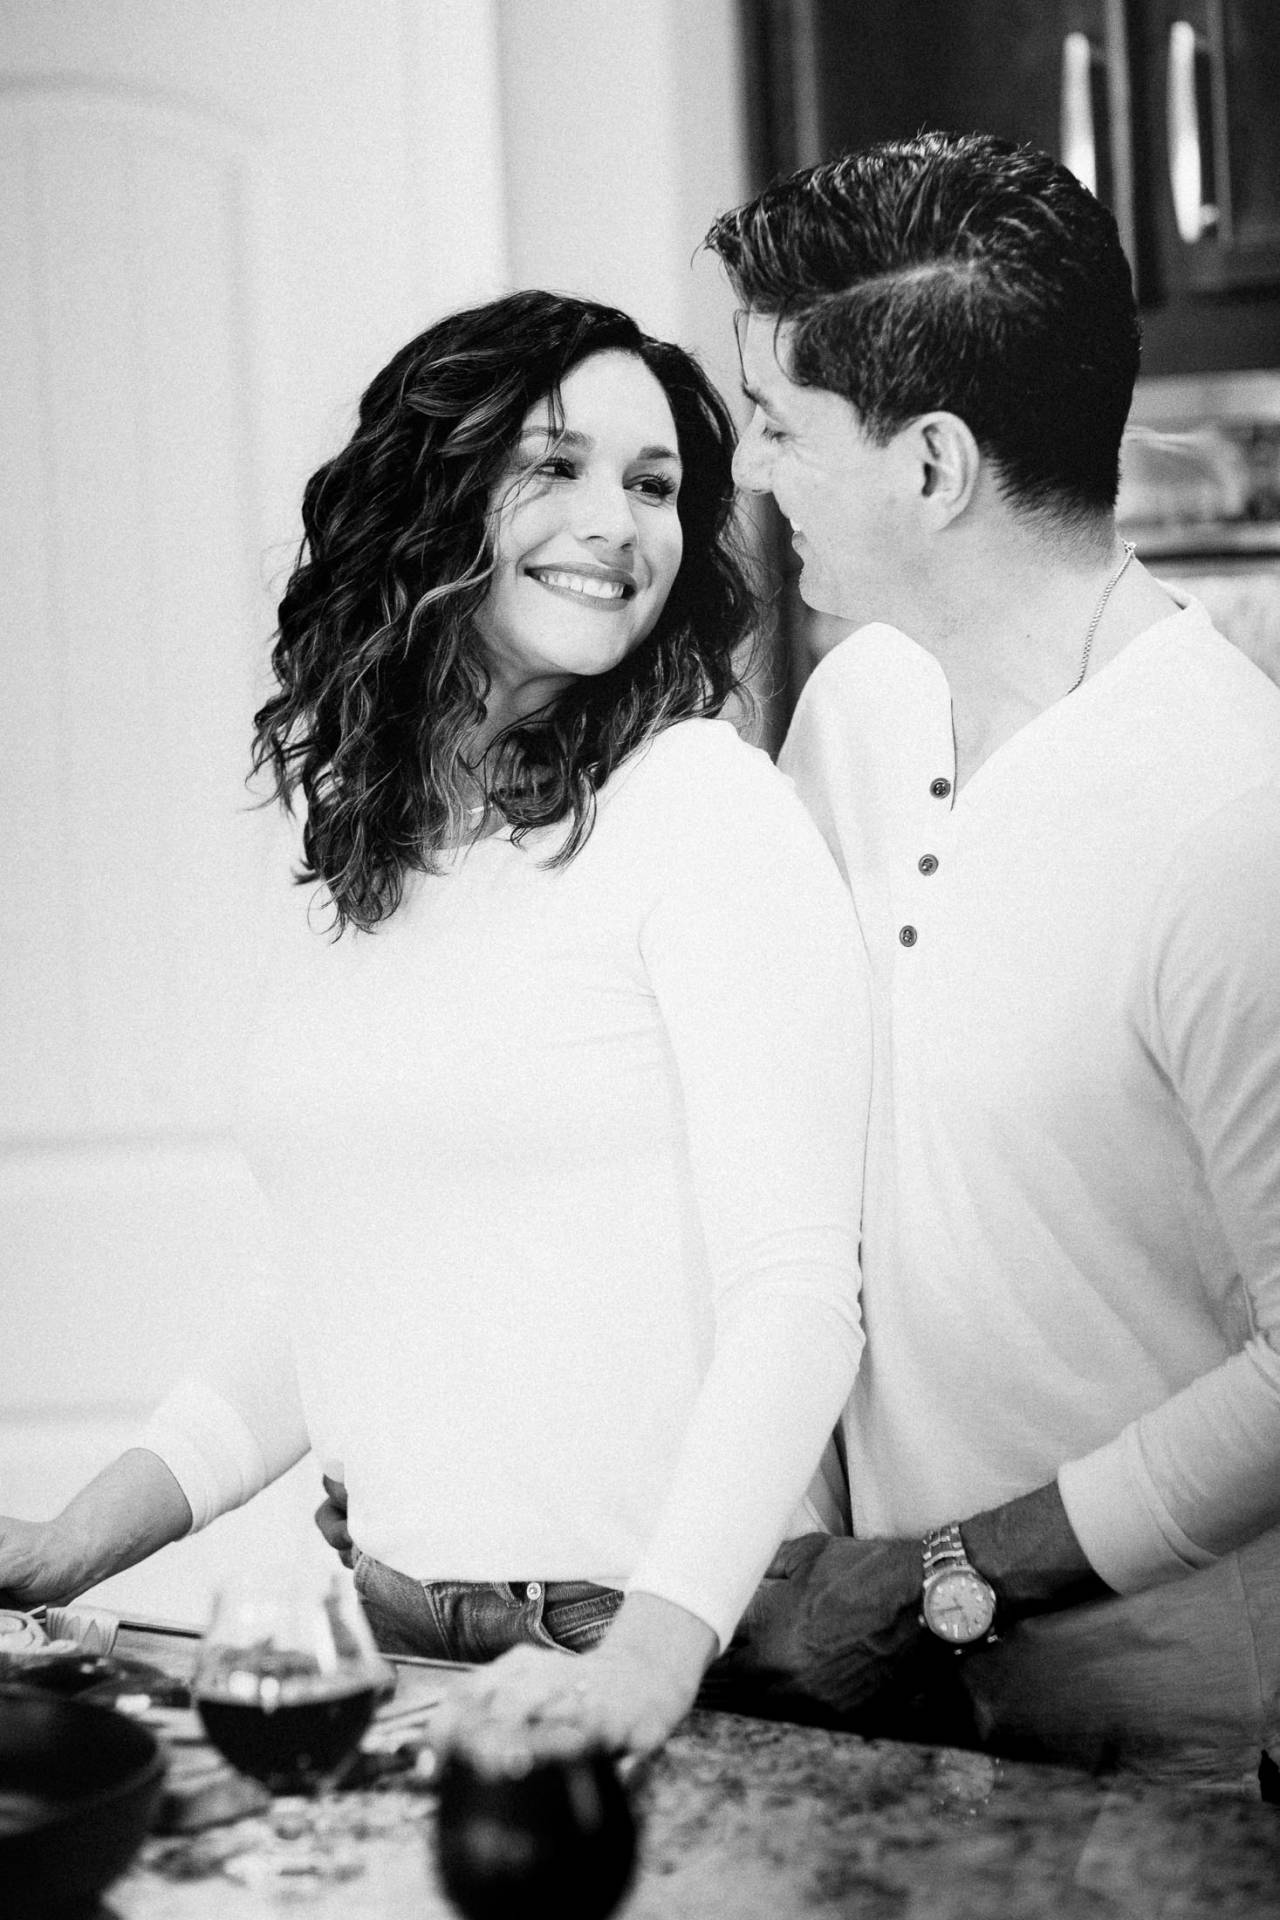 Black and white photo of couple sharing a moment as they cook together in their home.